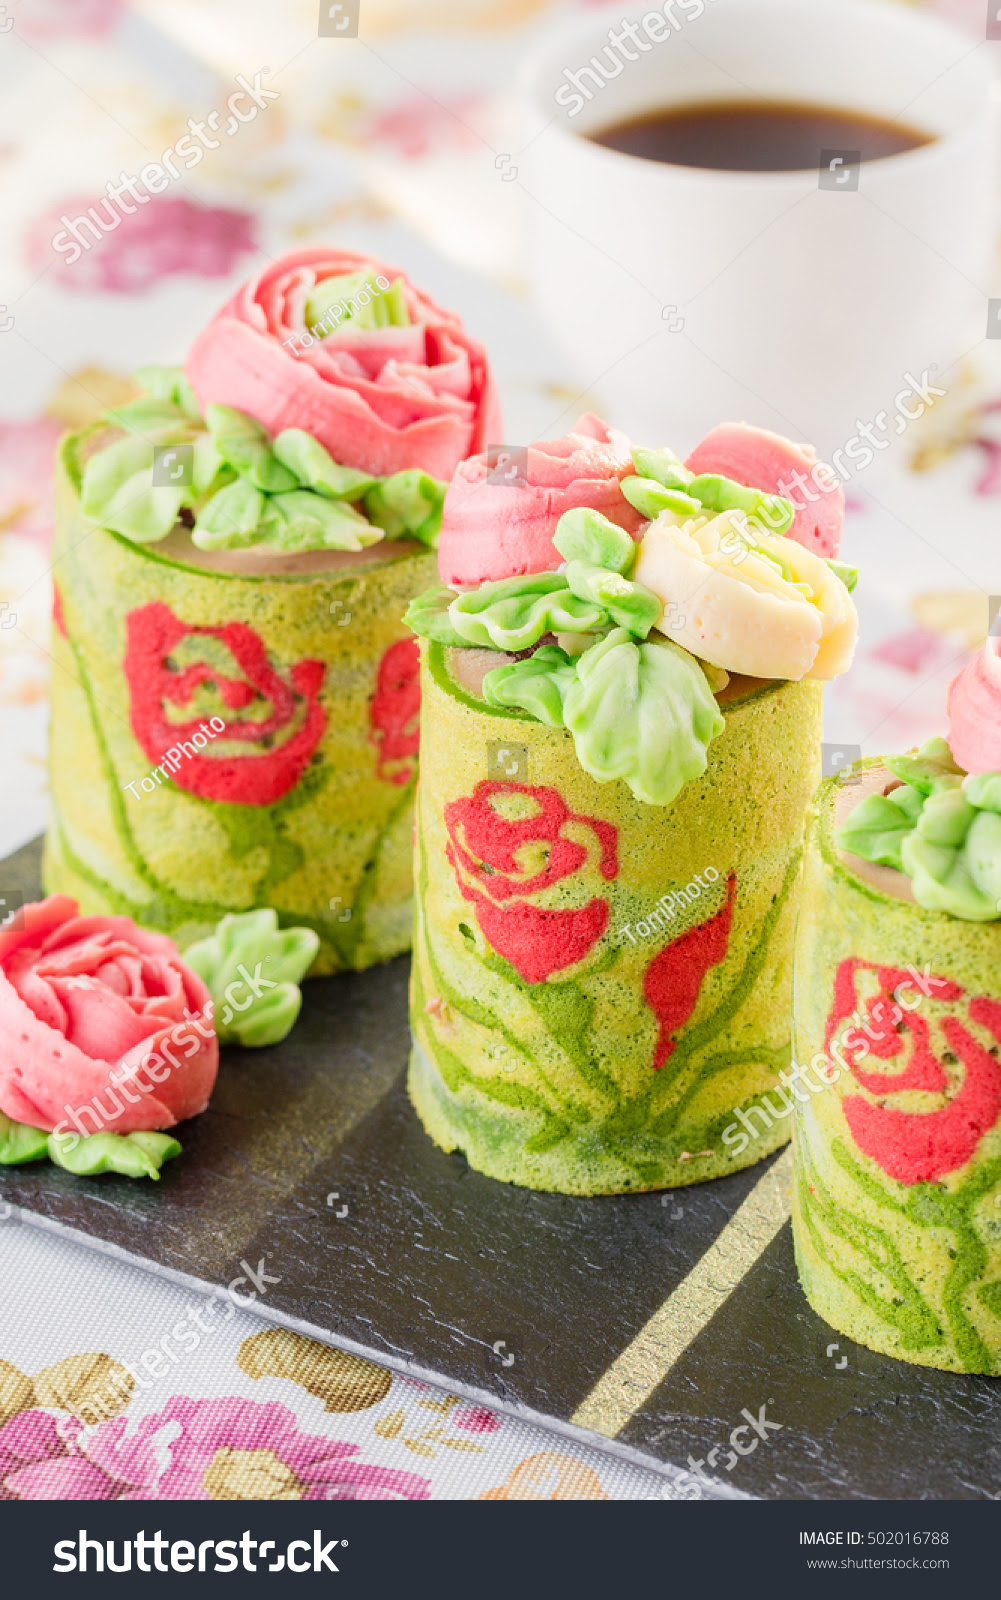 http://www.shutterstock.com/pic-502016788/stock-photo-spring-green-roll-cake-pastries-decorated-with-buttercream-flowers-modern-european-desserts-shallow-focus.html